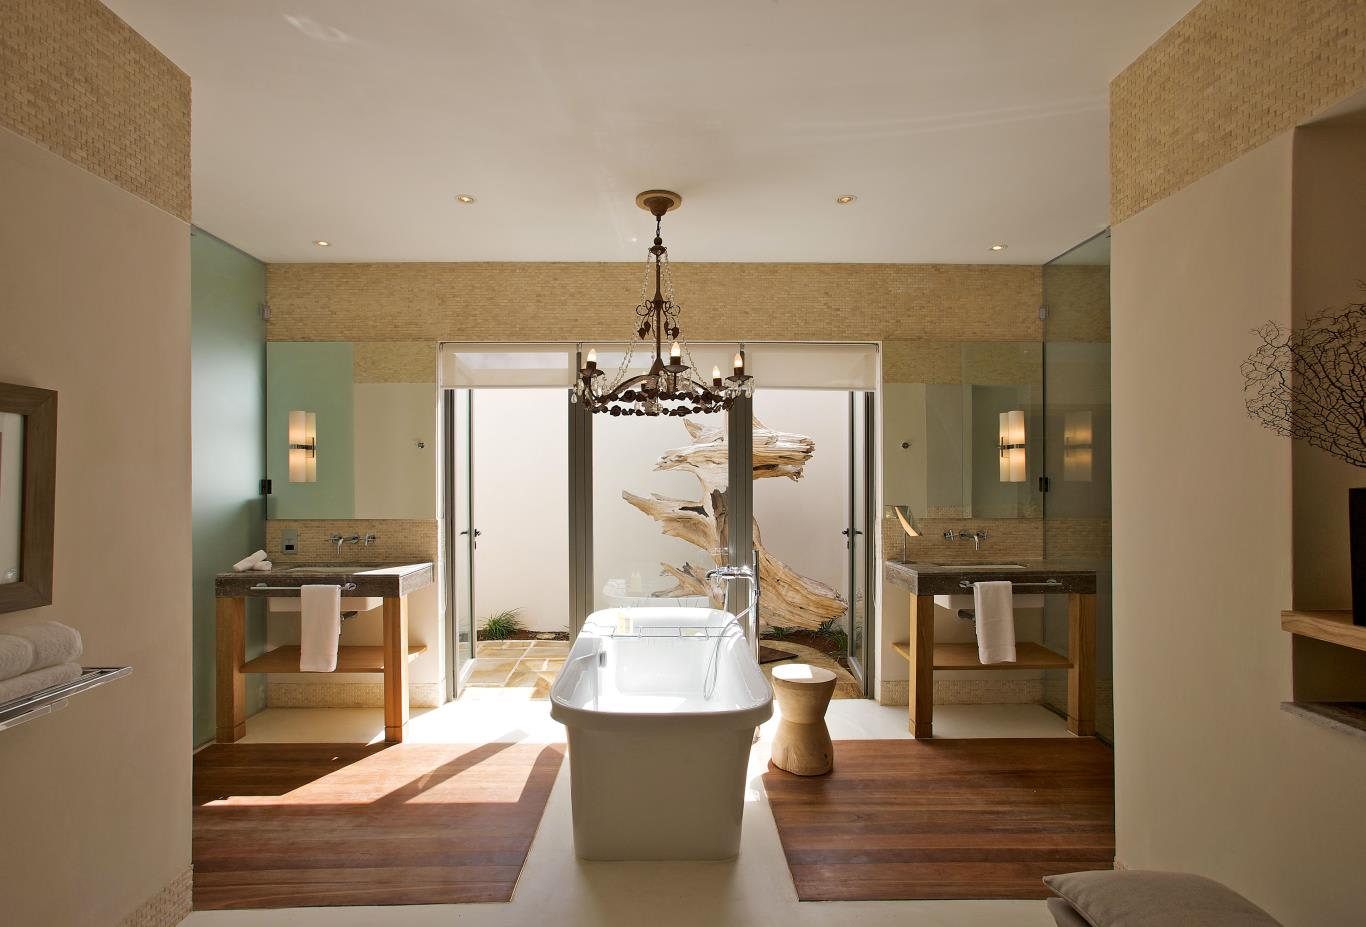 Prestige Villa bathroom